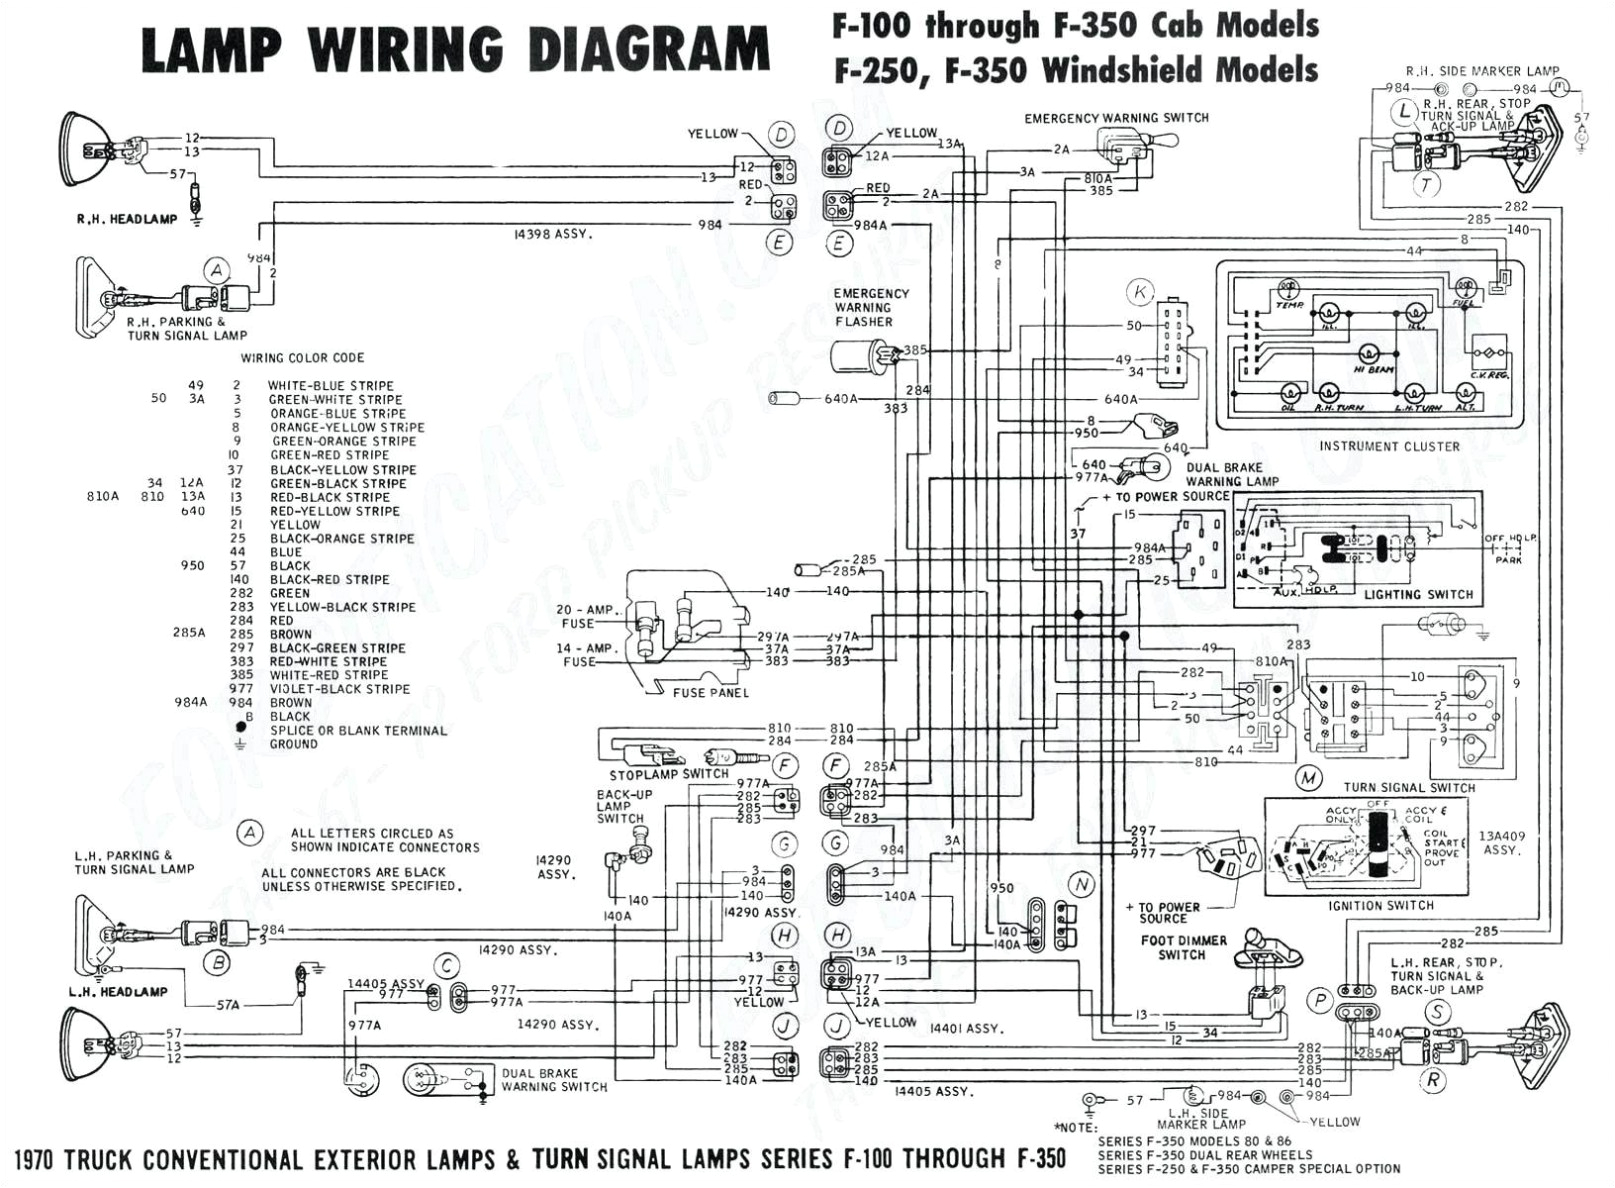 myers snow plow wiring diagram hd walls find wallpapers wiring 677 beam wiring diagram wiring diagram